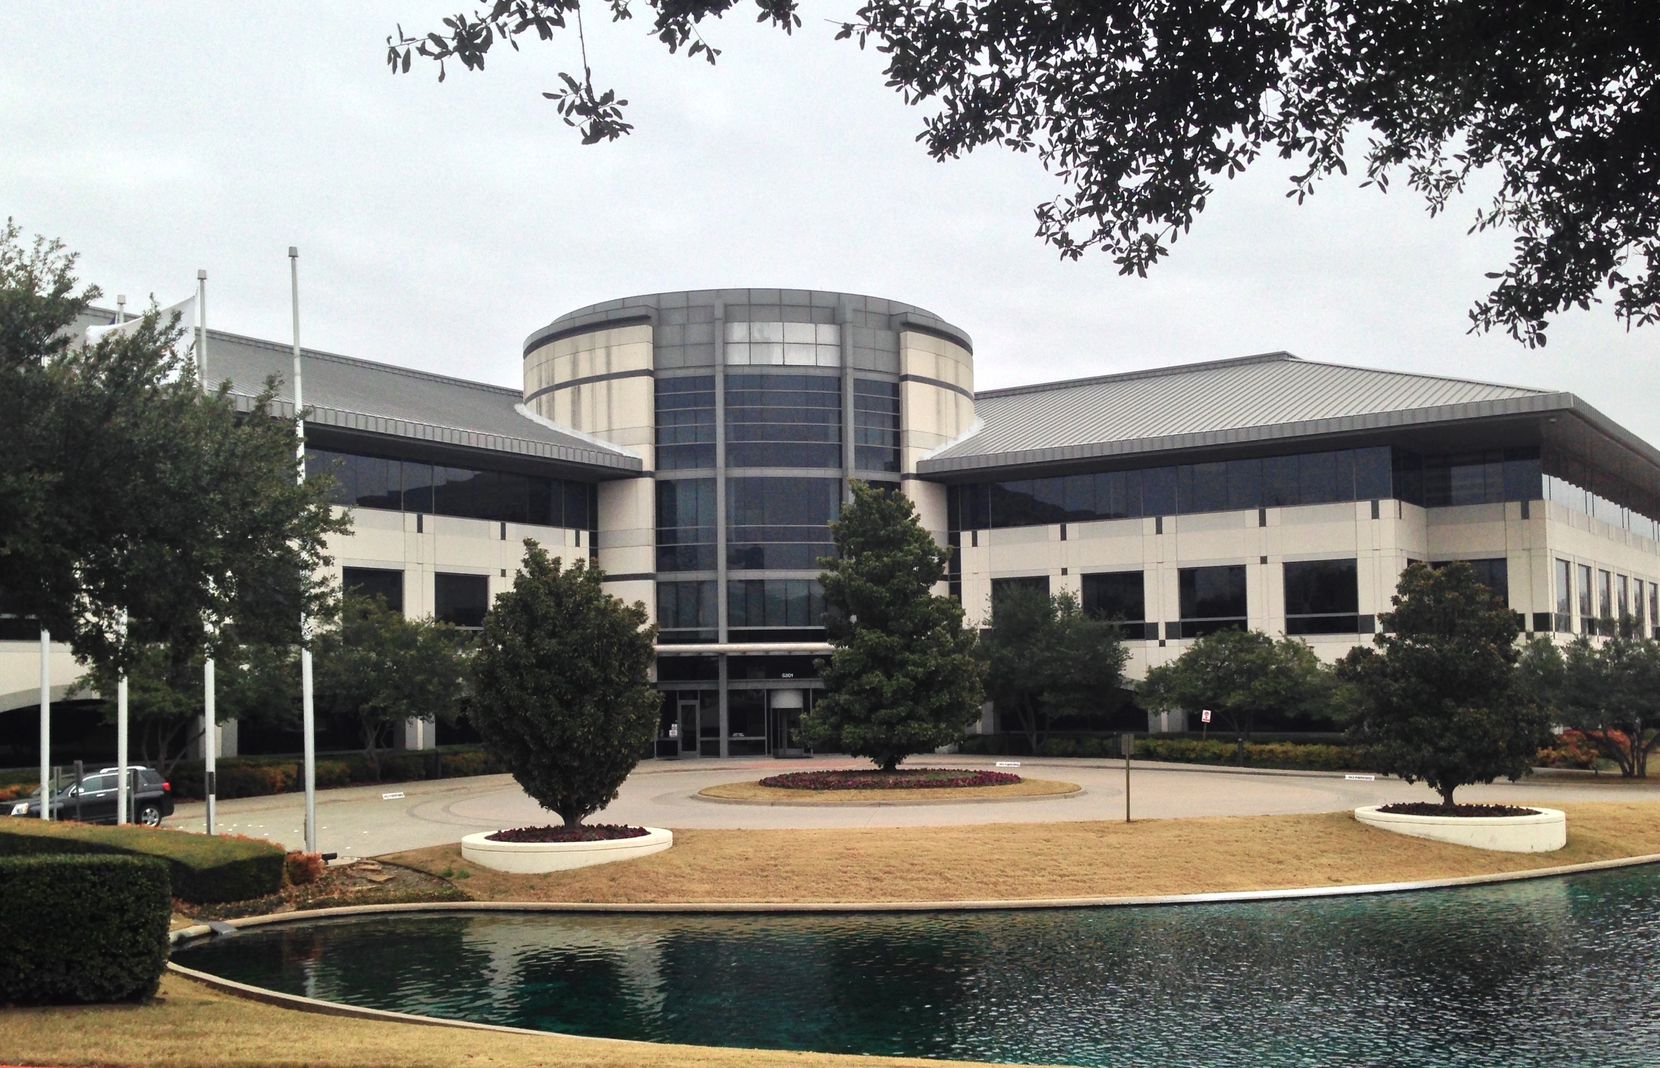 The Keurig Dr Pepper office campus in Legacy could be put up for sale or lease if the beverage firm moves its local offices to Frisco.